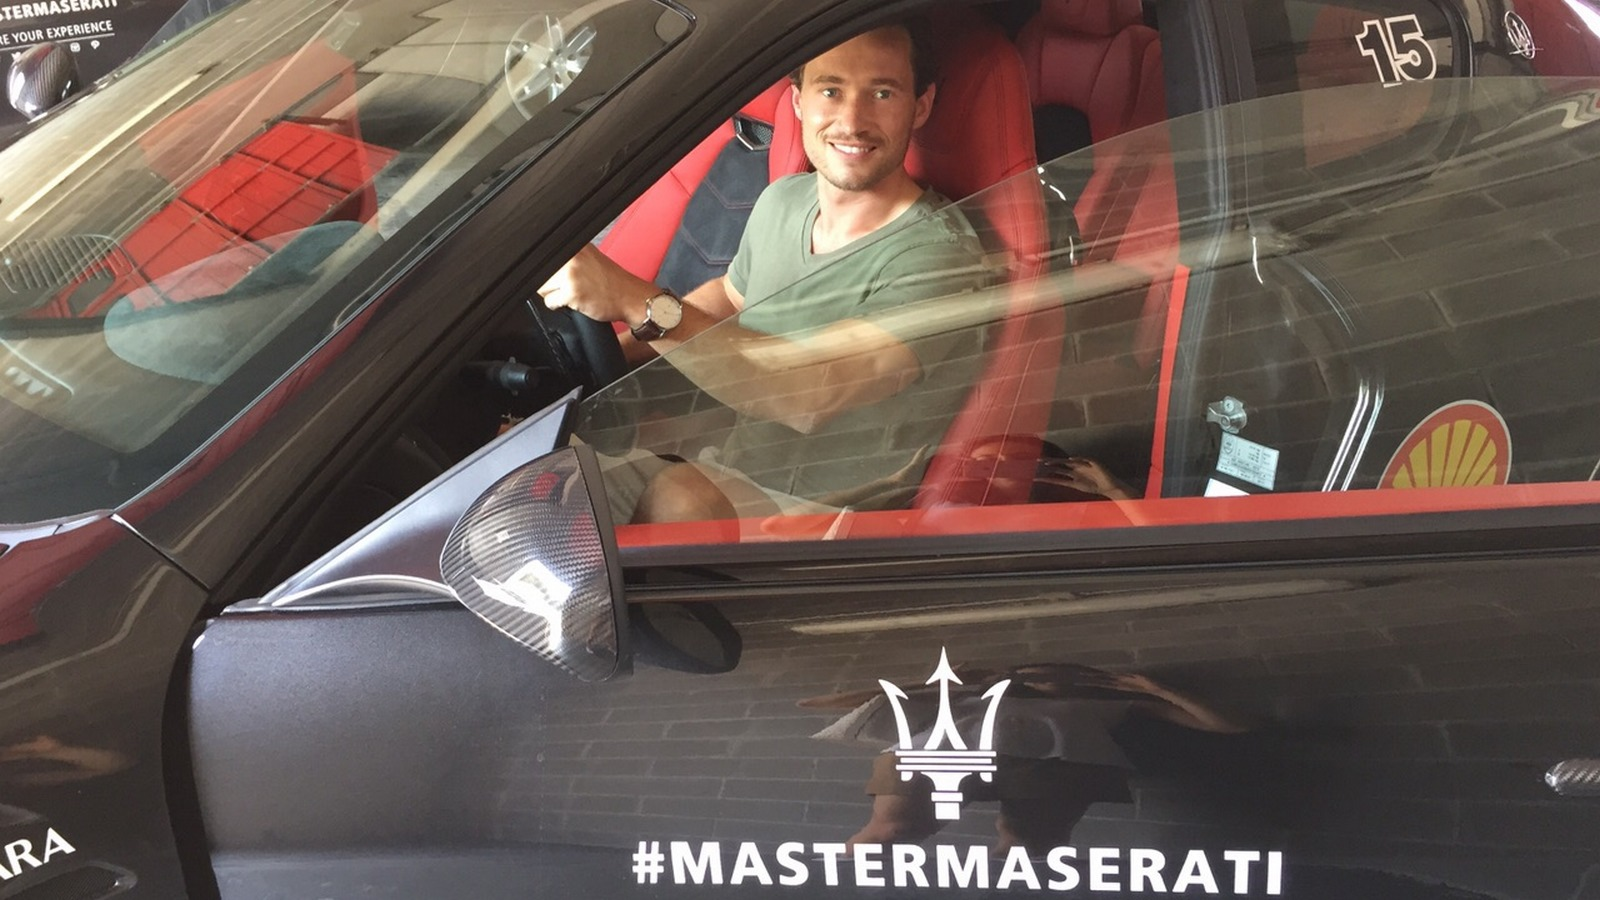 SPG member James inside a Maserati for a test drive